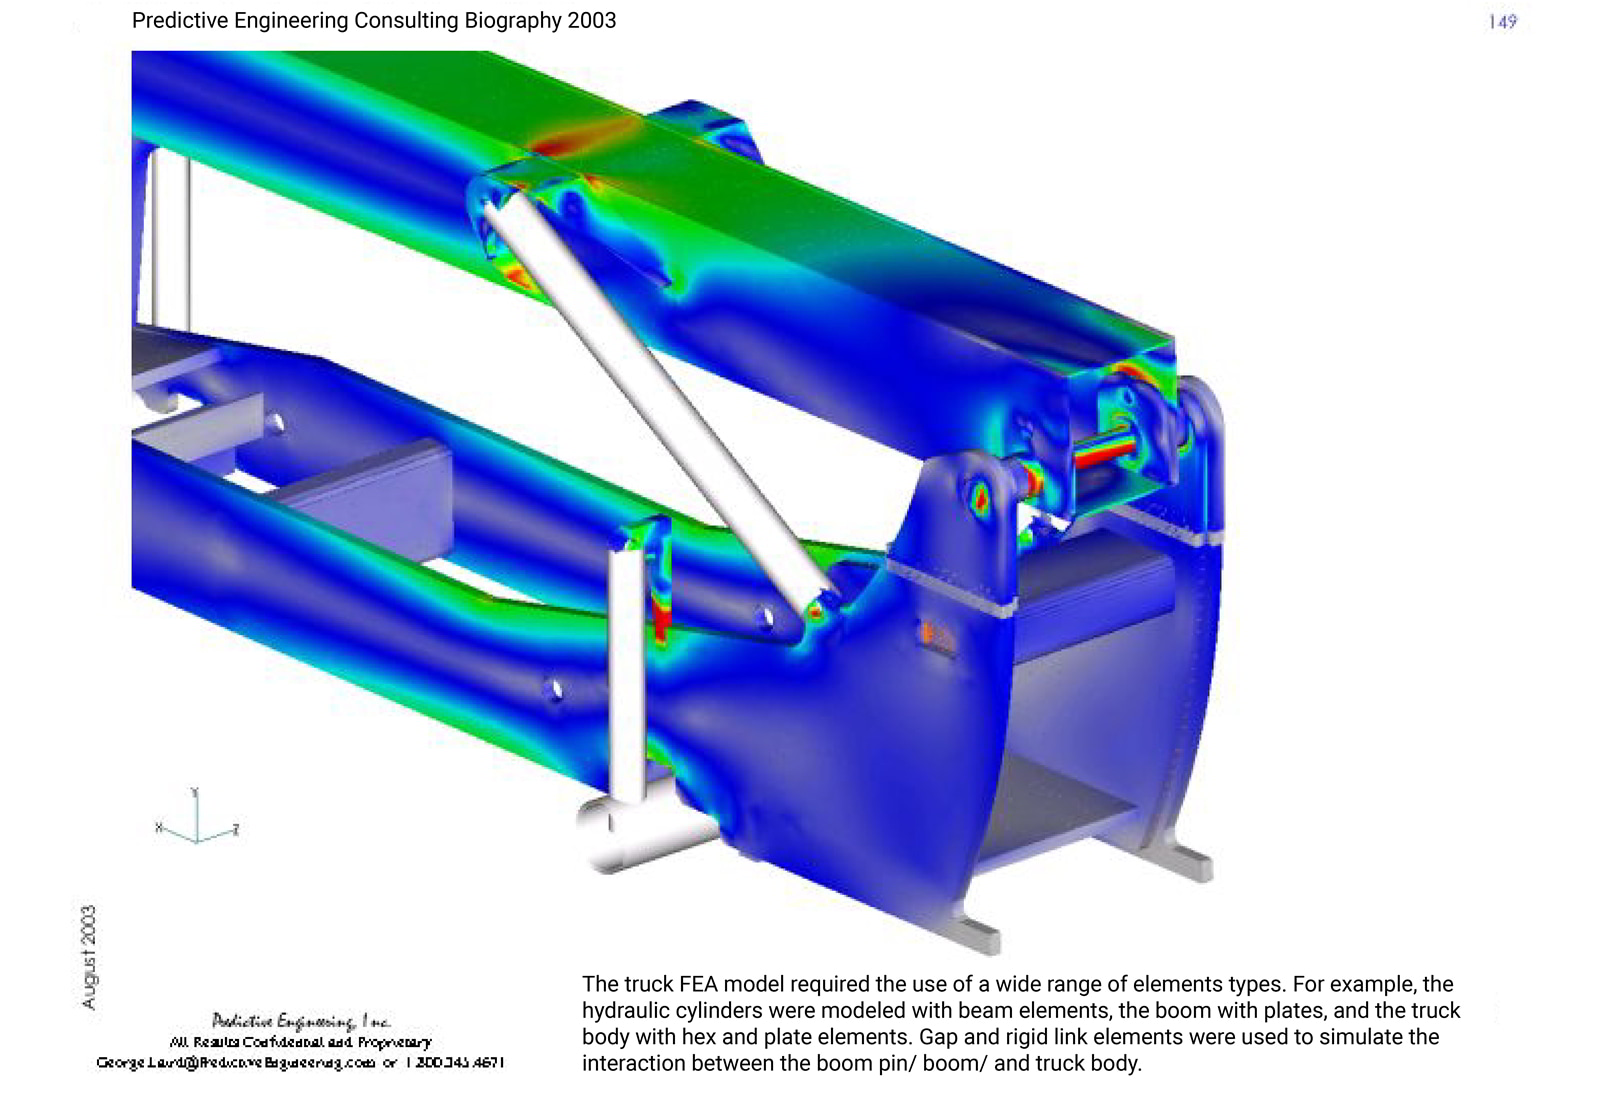 The FEA model (Femap) of the lift-truck used a wide range of FE element types from solid to plate to RBE to beam elements